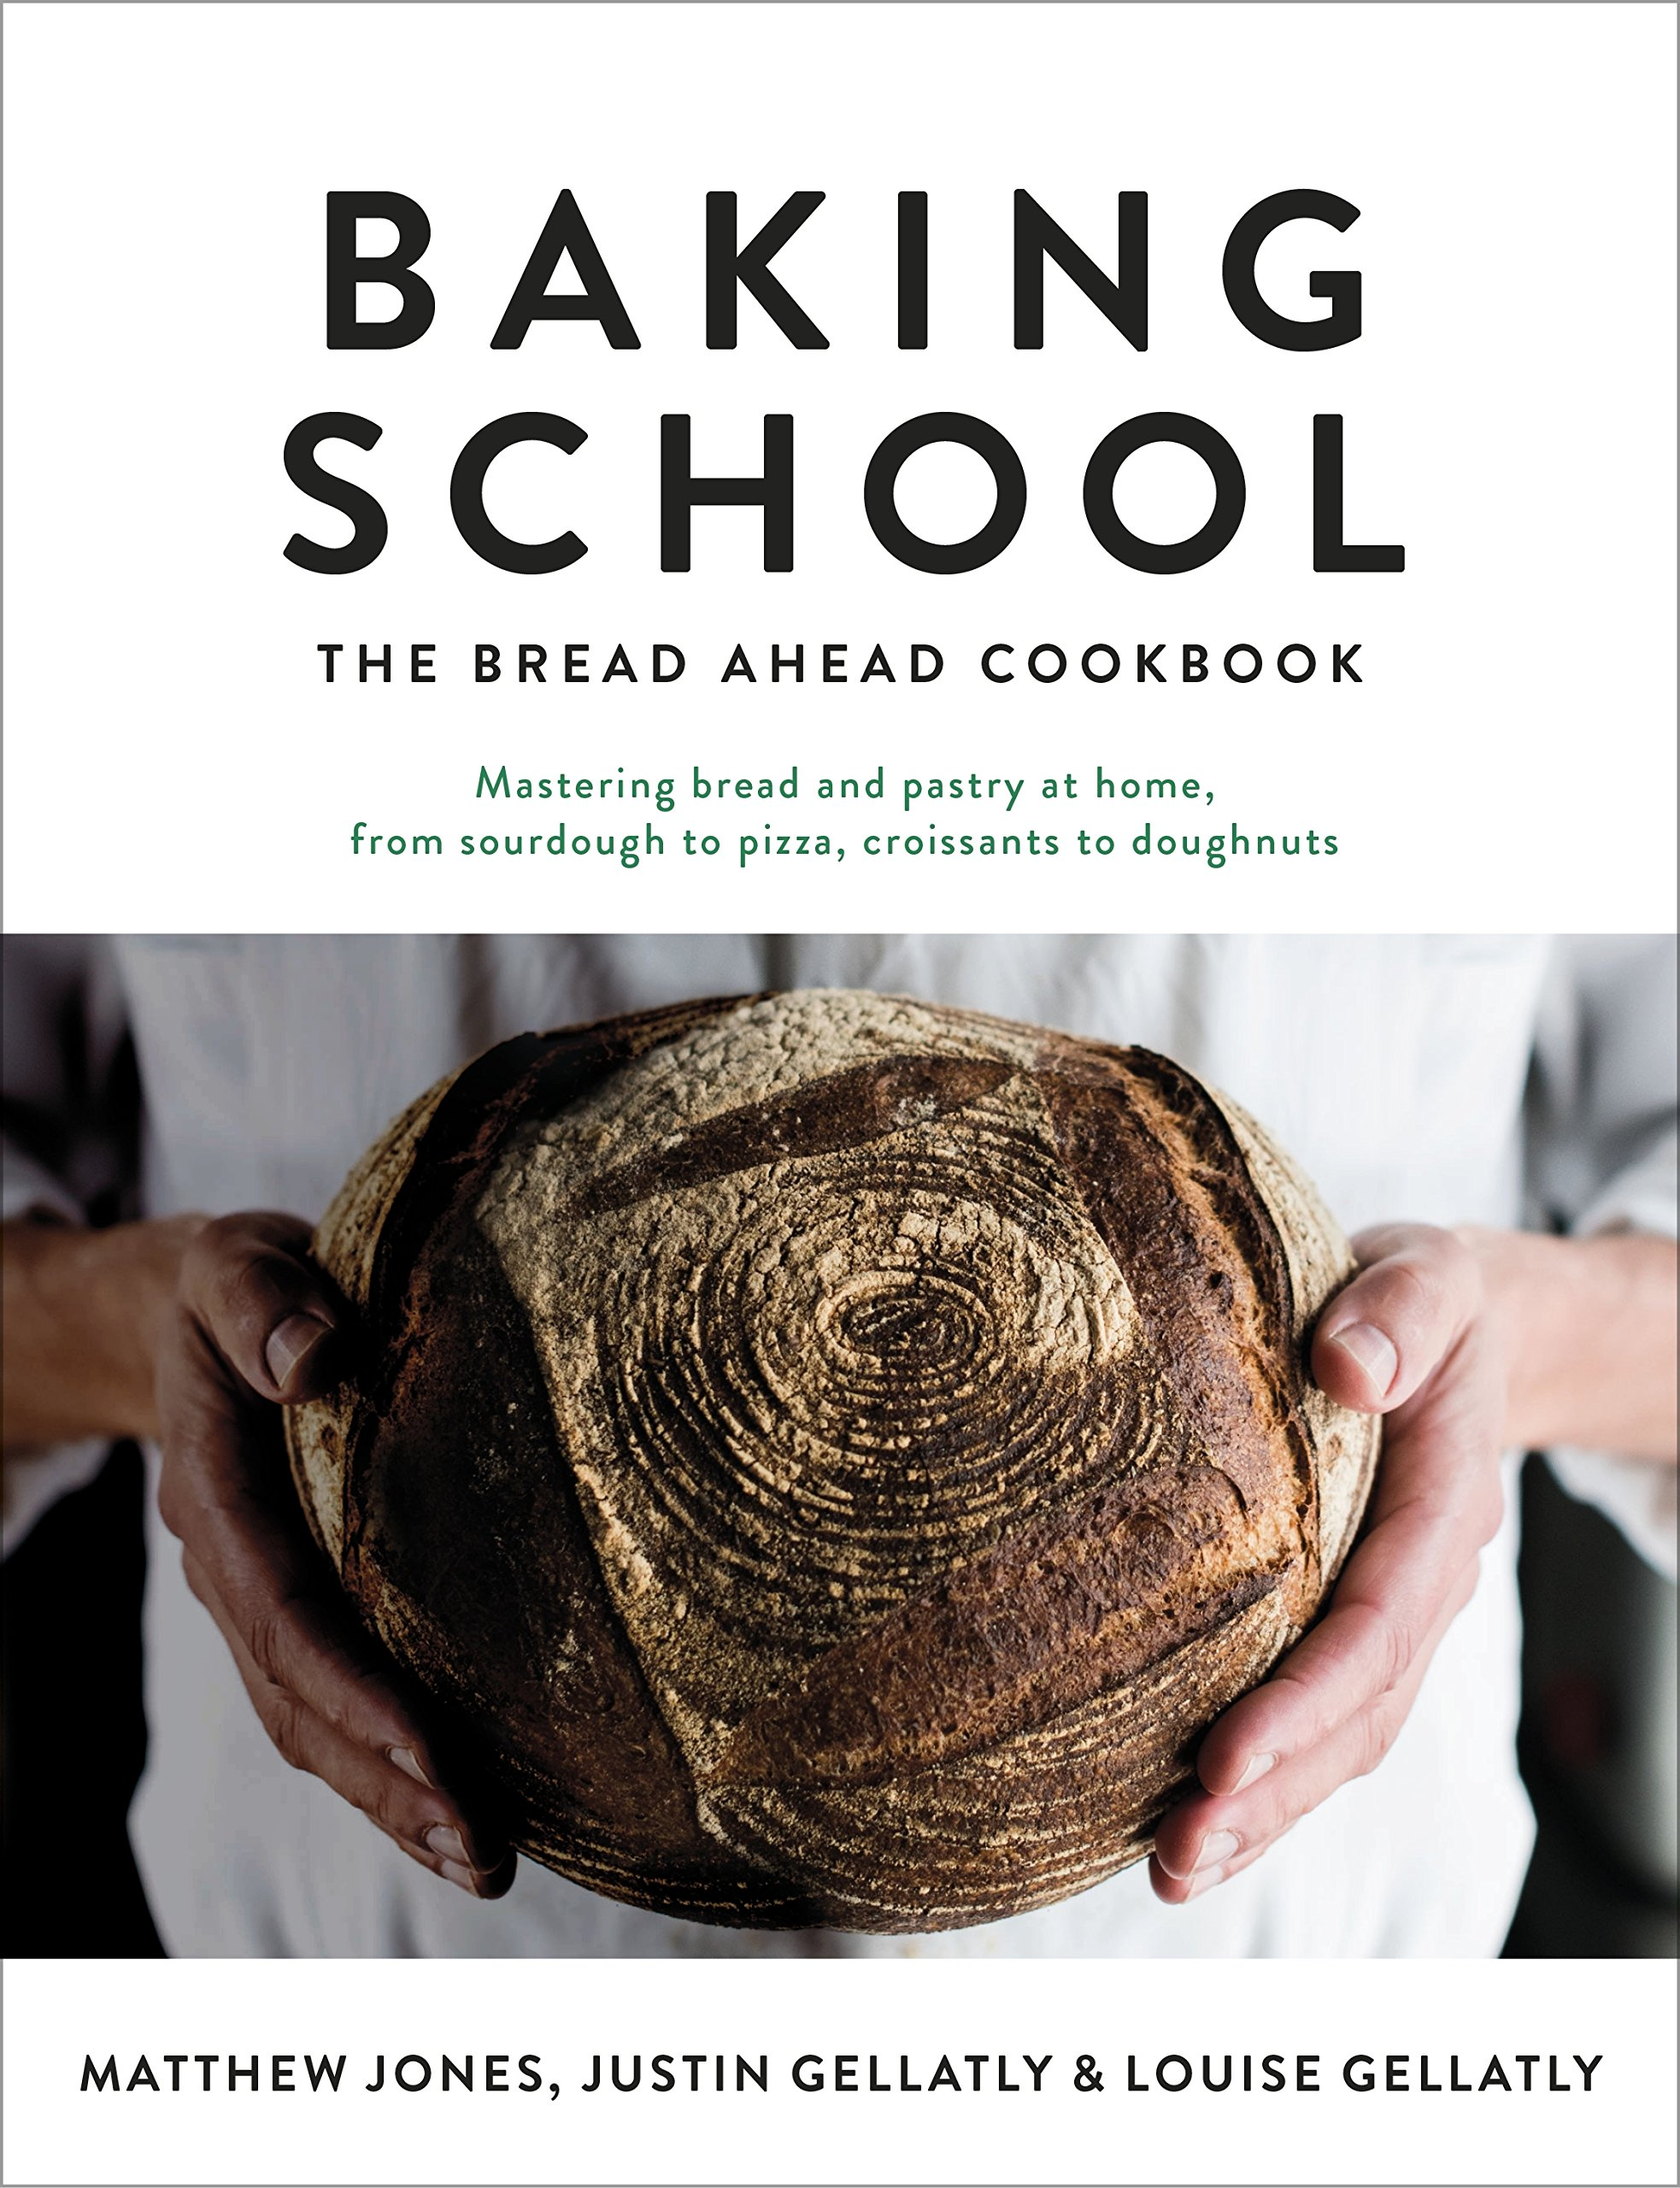 Image OfBaking School: The Bread Ahead Cookbook